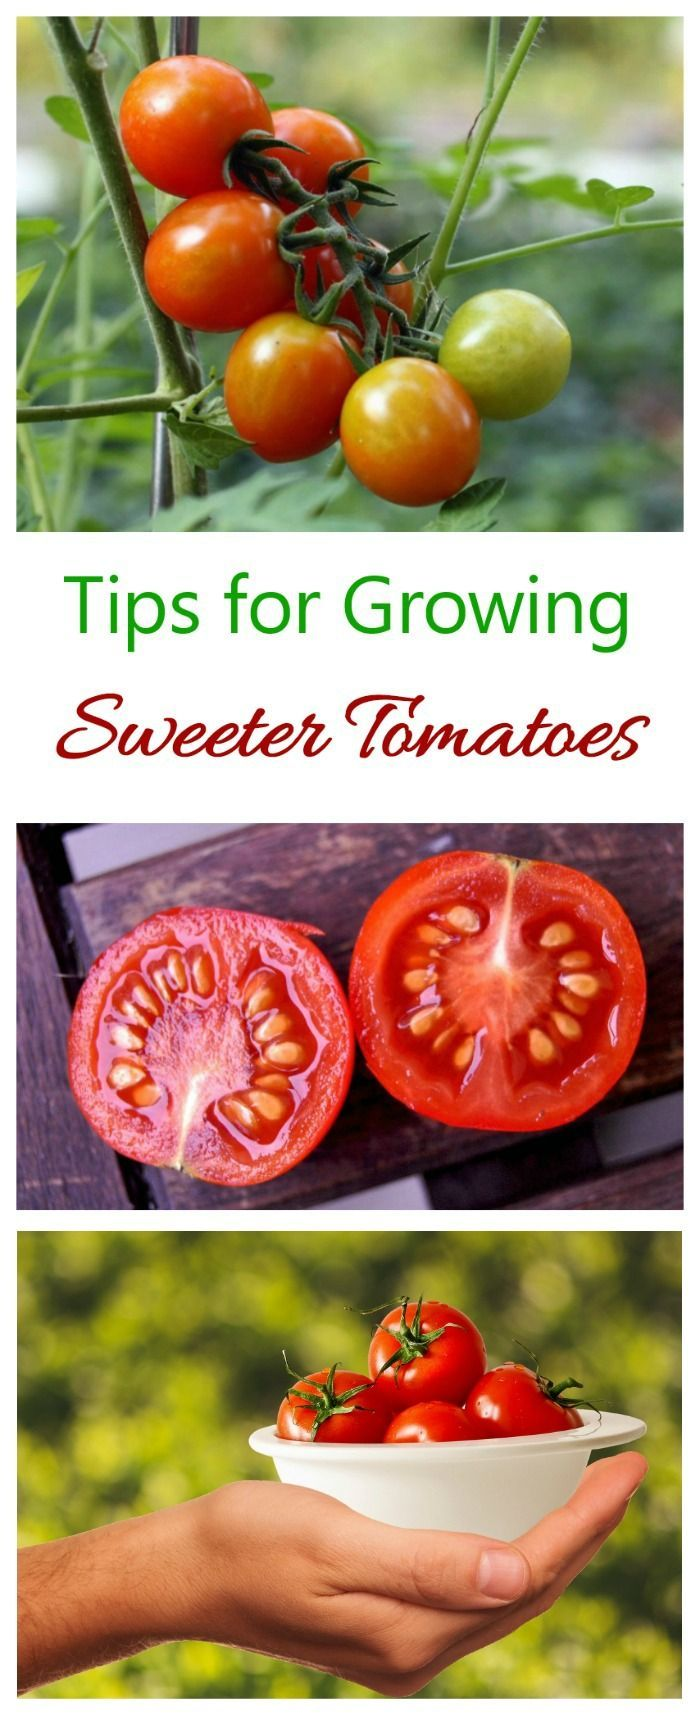 Growing sweet tomatoes depends a lot on the type of tomato and your growing conditions. See my tips and myths about how to get sweeter tomatoes